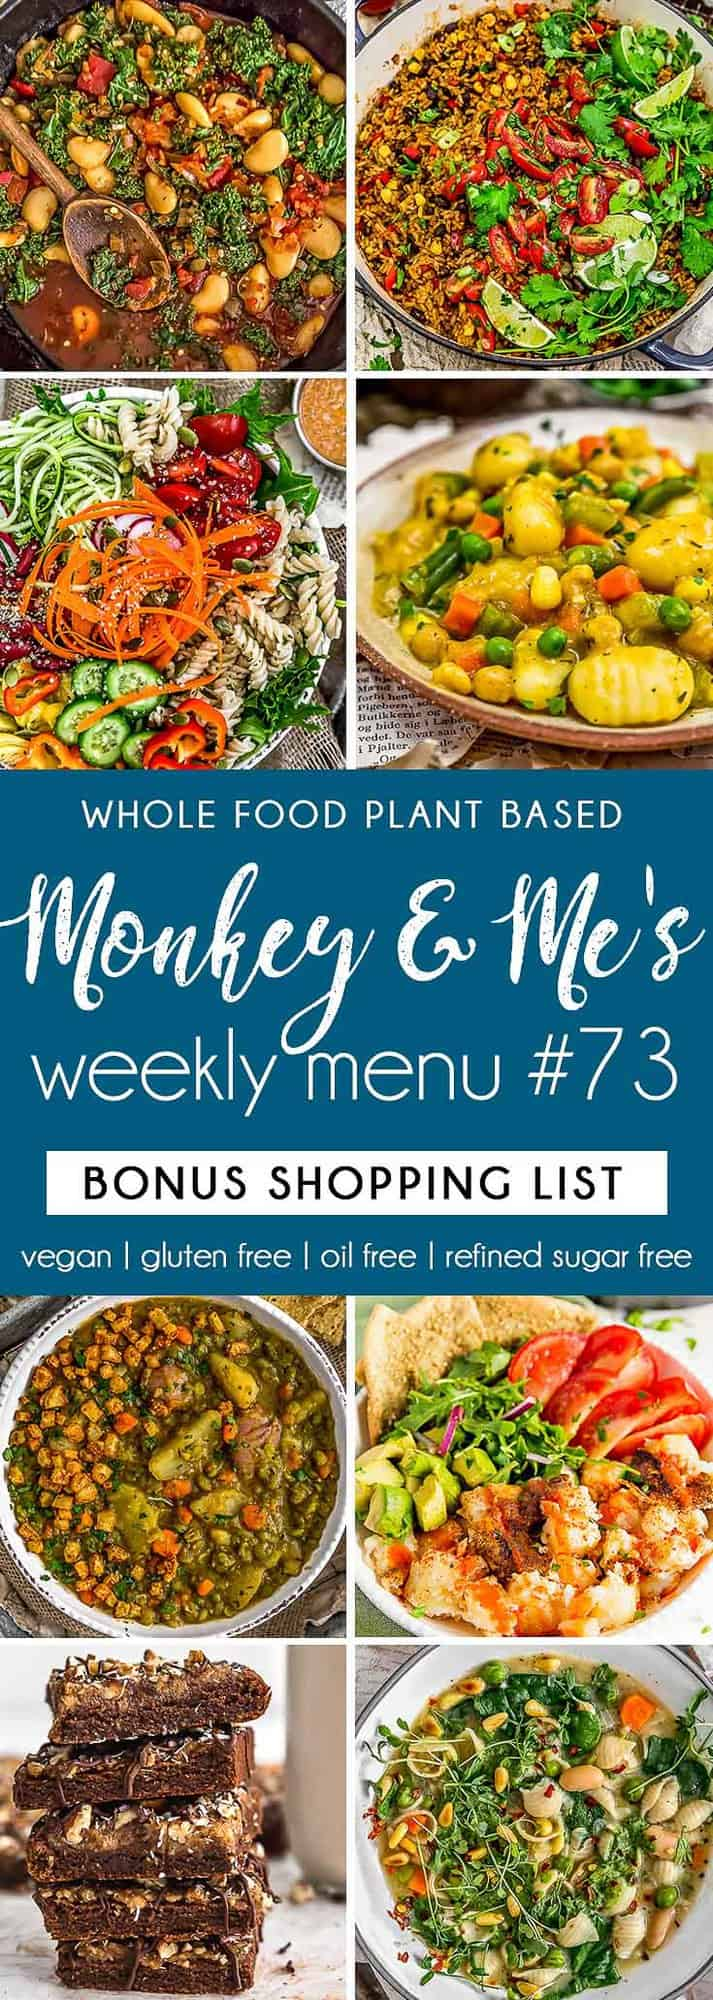 Monkey and Me's Menu 73 featuring 8 recipes